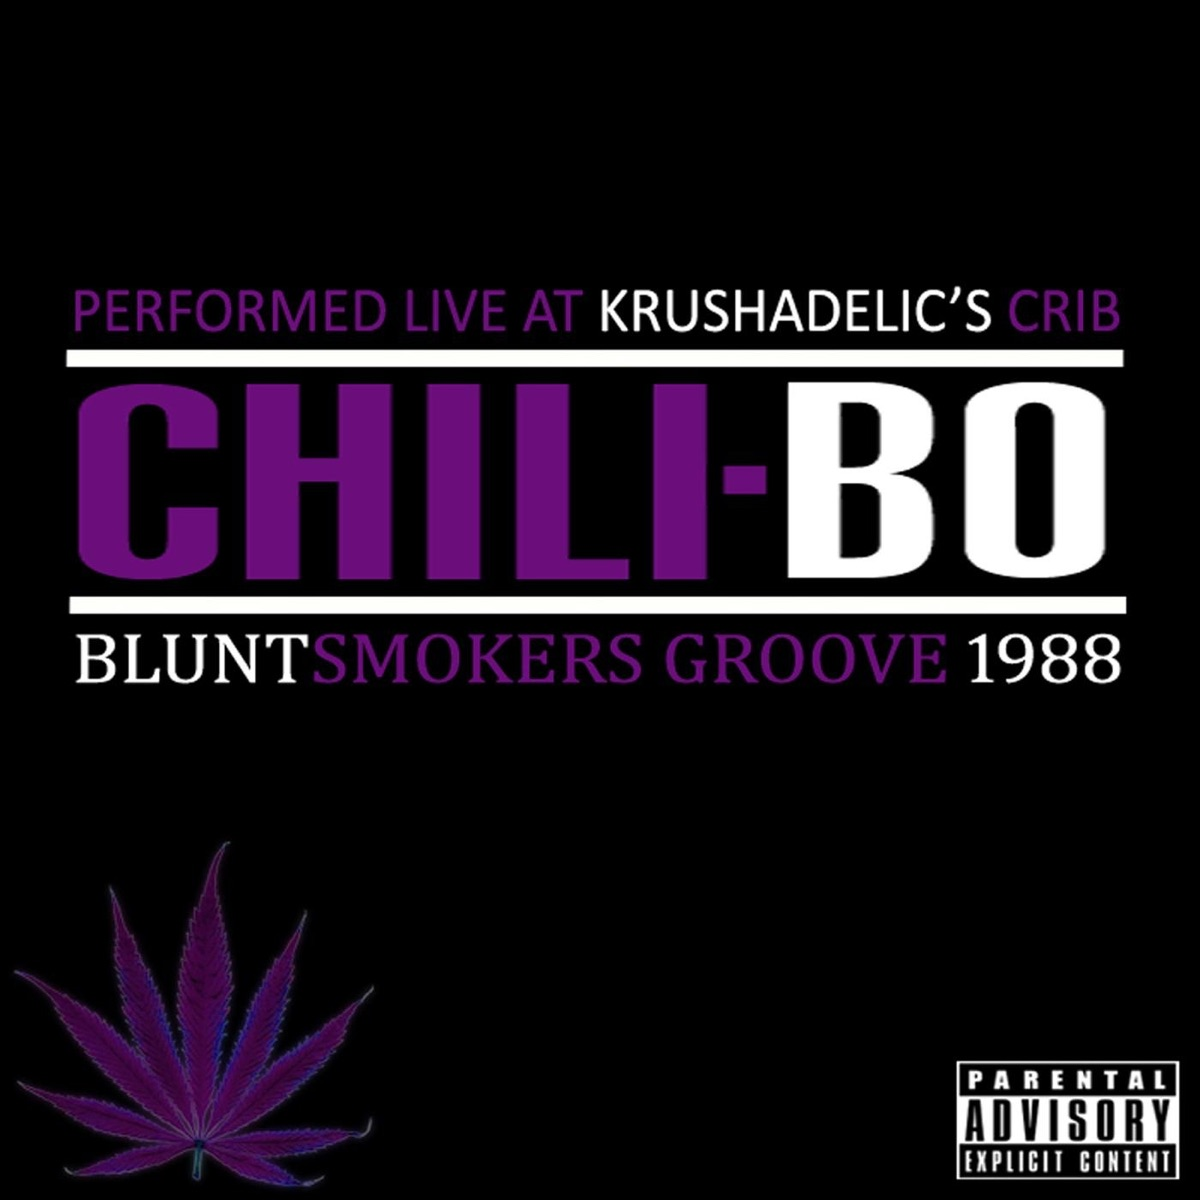 Bluntsmokers Groove 1988 - Single Chili-Bo CD cover